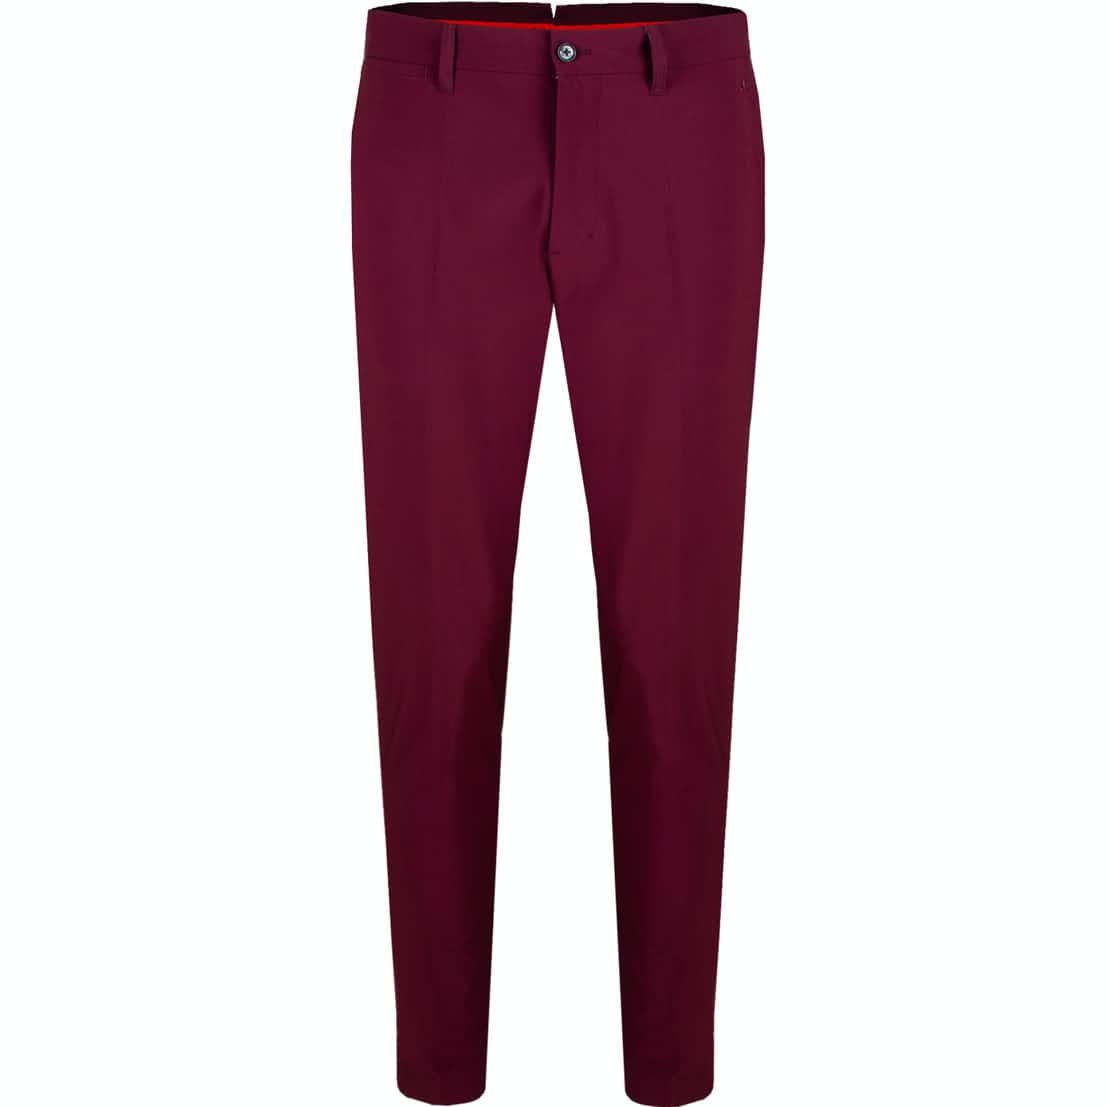 Ellott Tight Micro Stretch Dark Mahogany - AW18